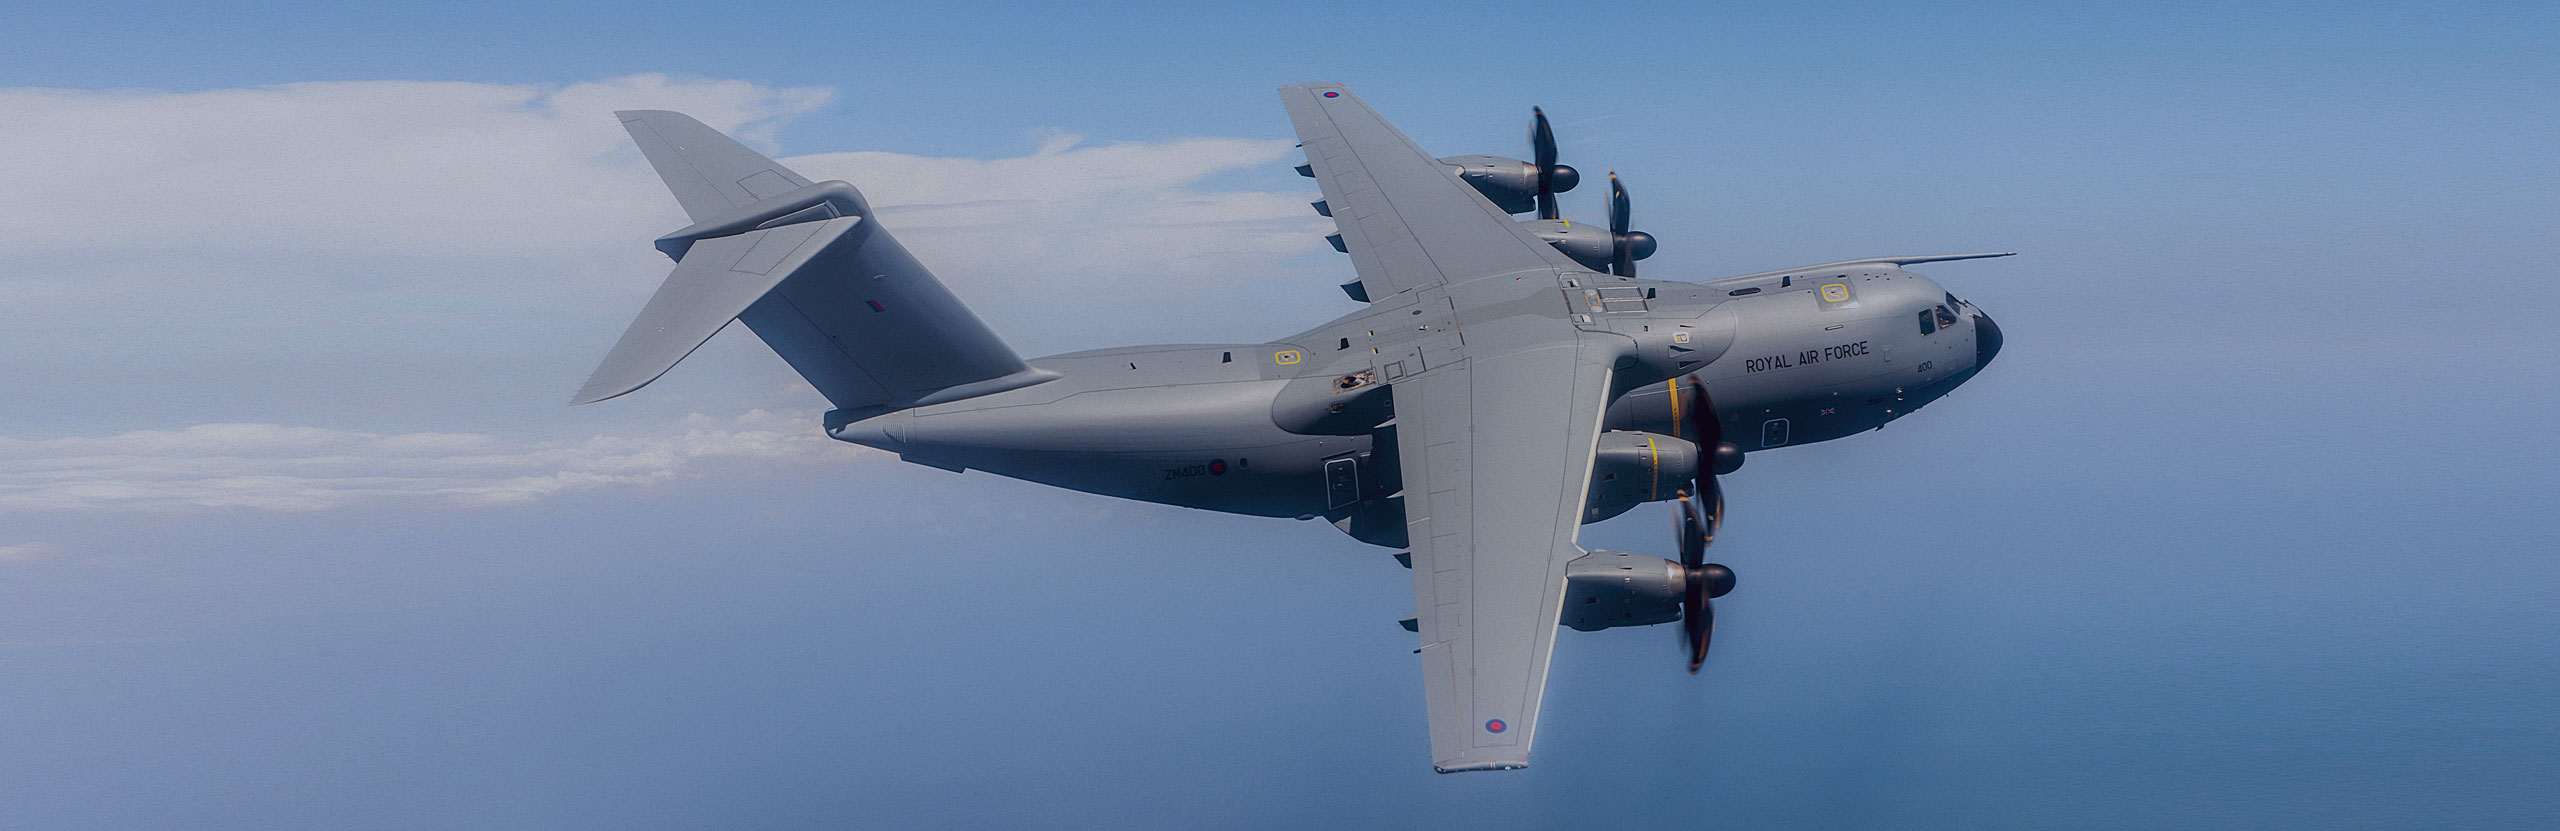 A400M – A Tactical and Strategic Airlifter